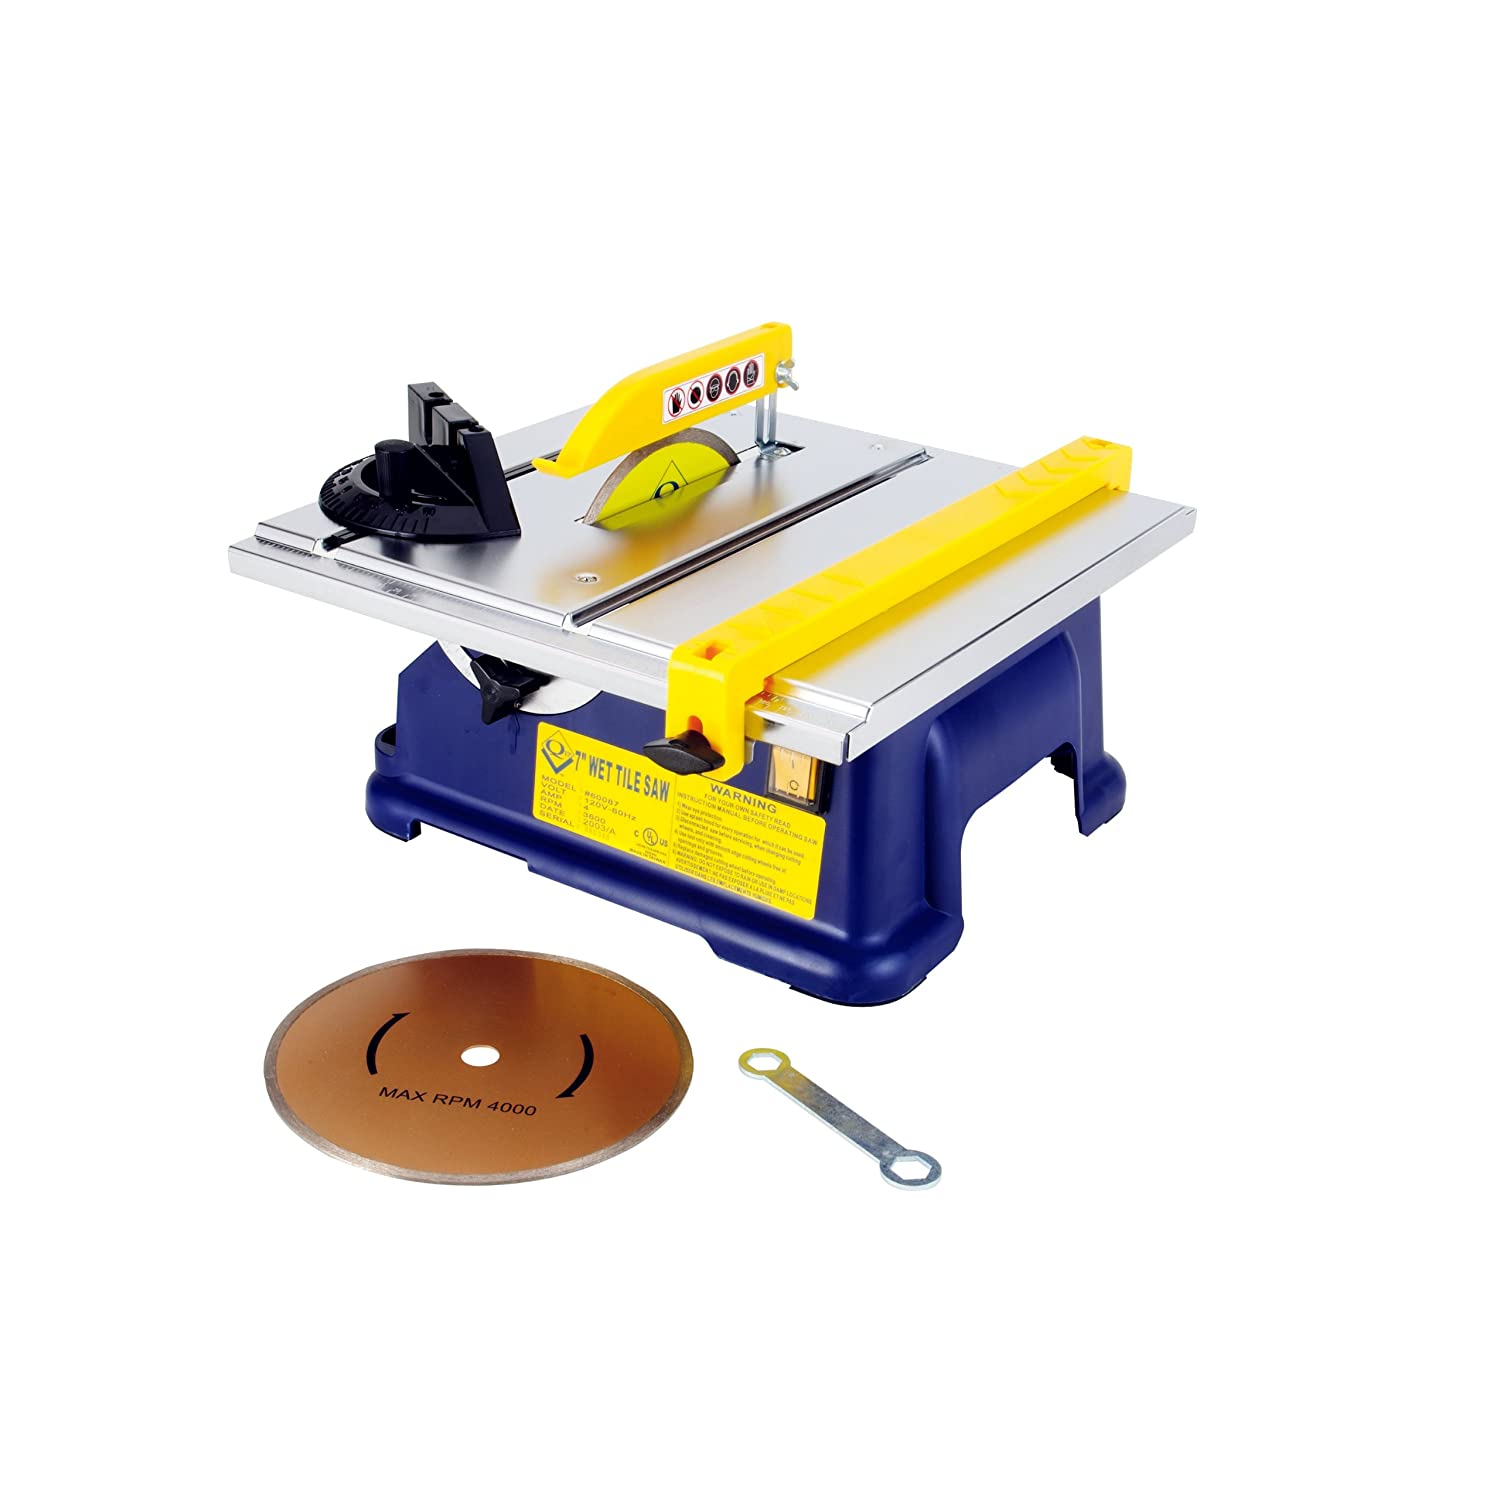 QEP 60087 7-Inch Tile Saw with Water Cooling System